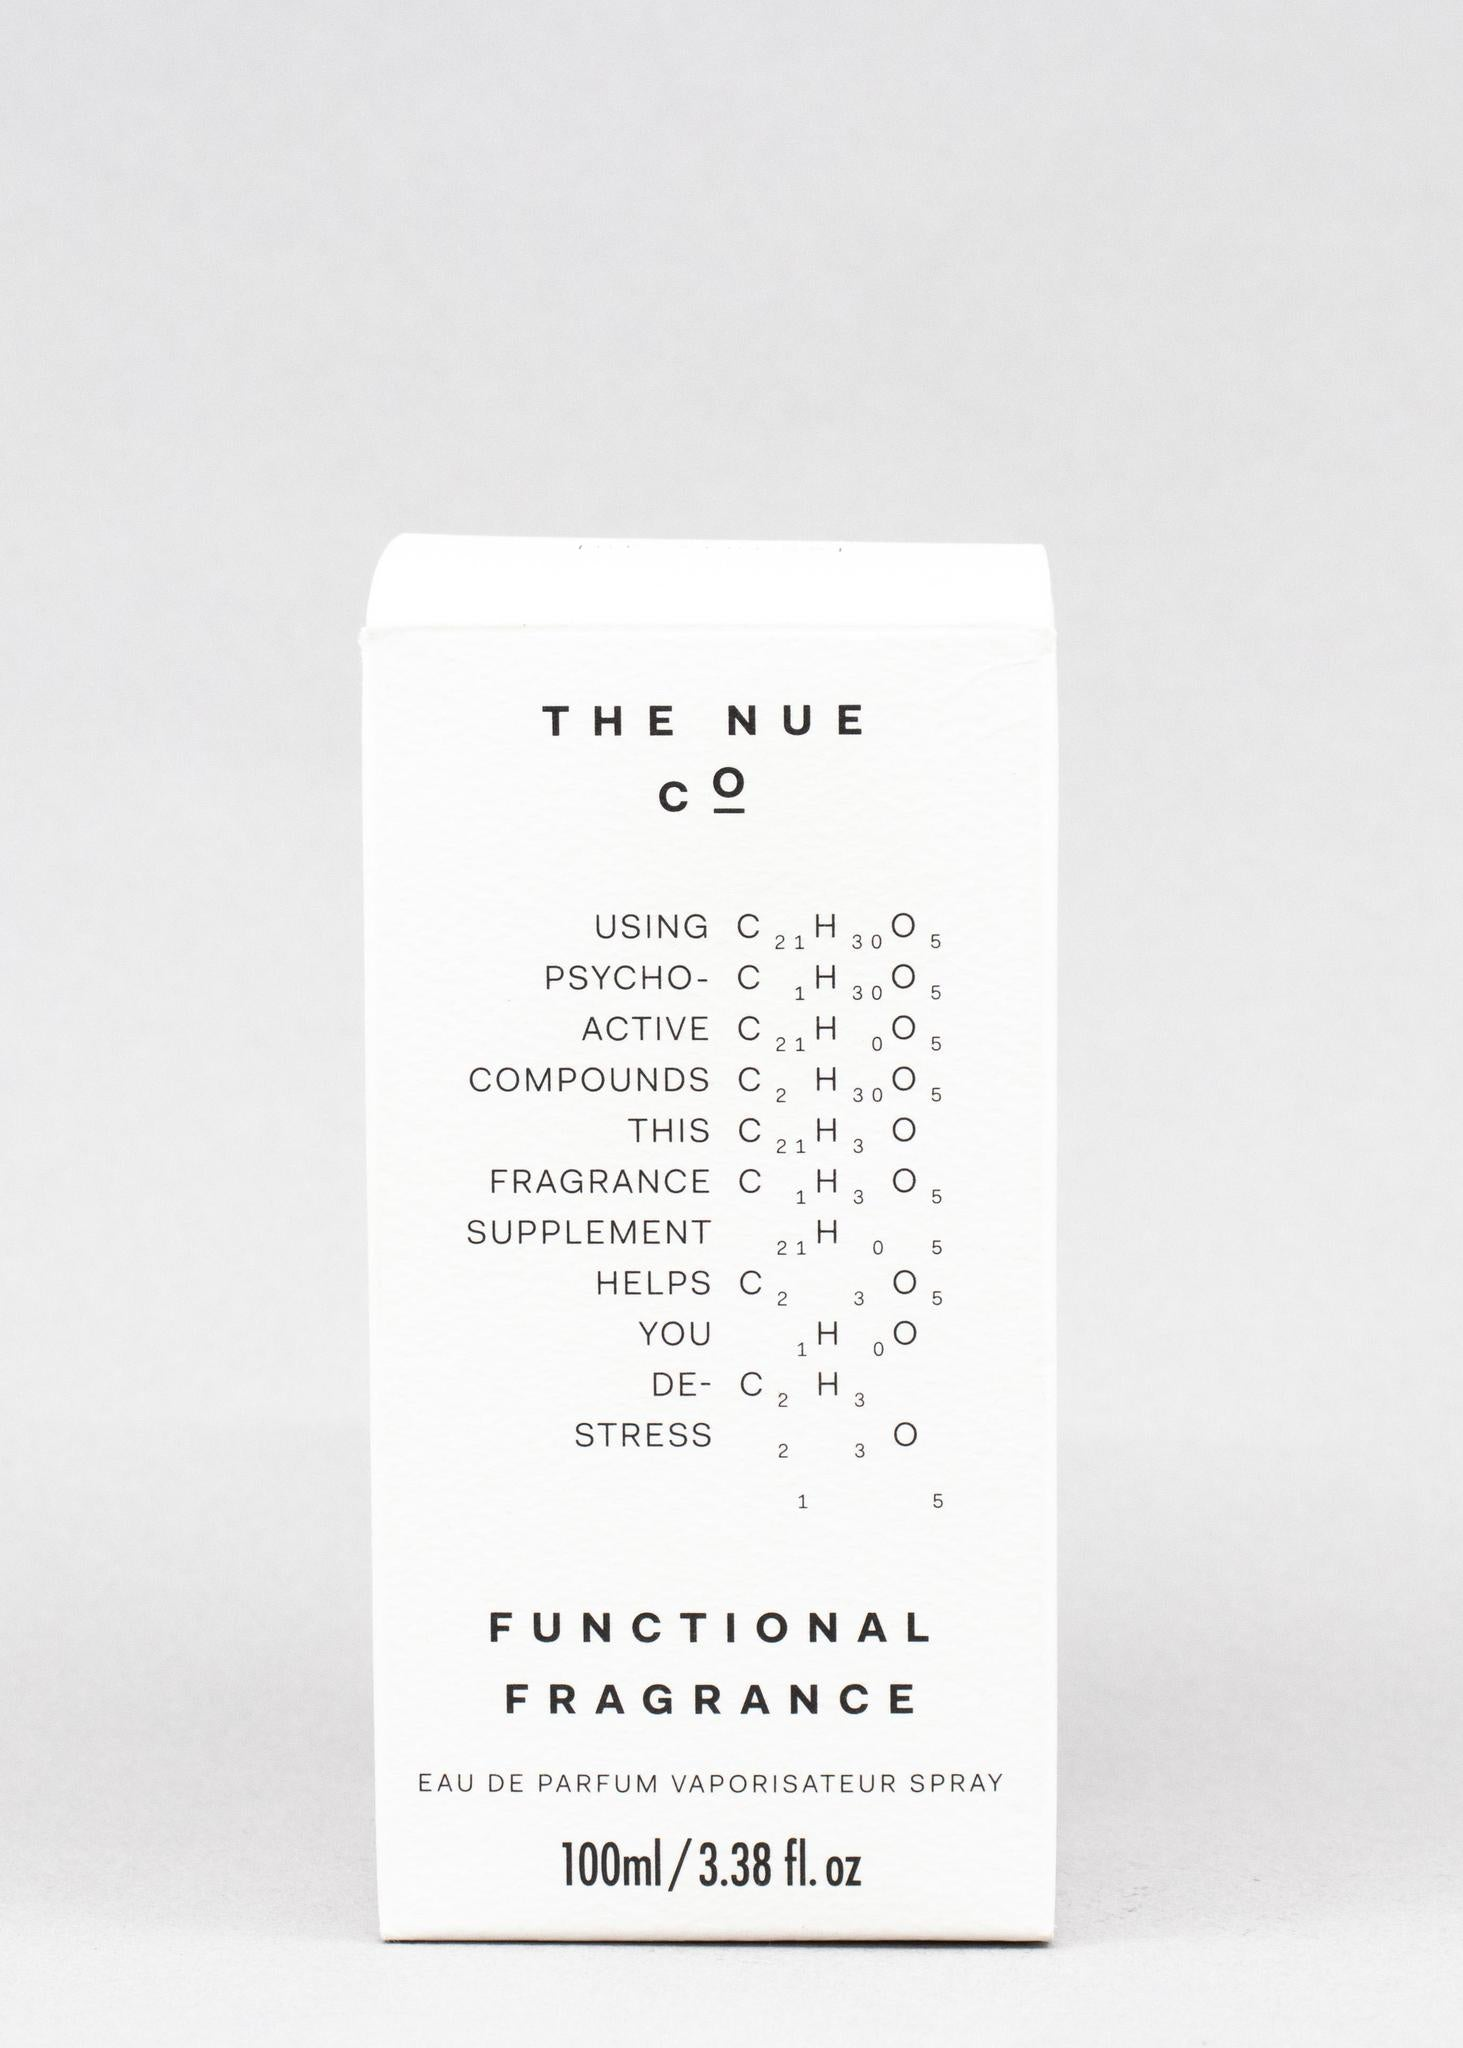 The Nue Co - 100mL Functional Fragrance